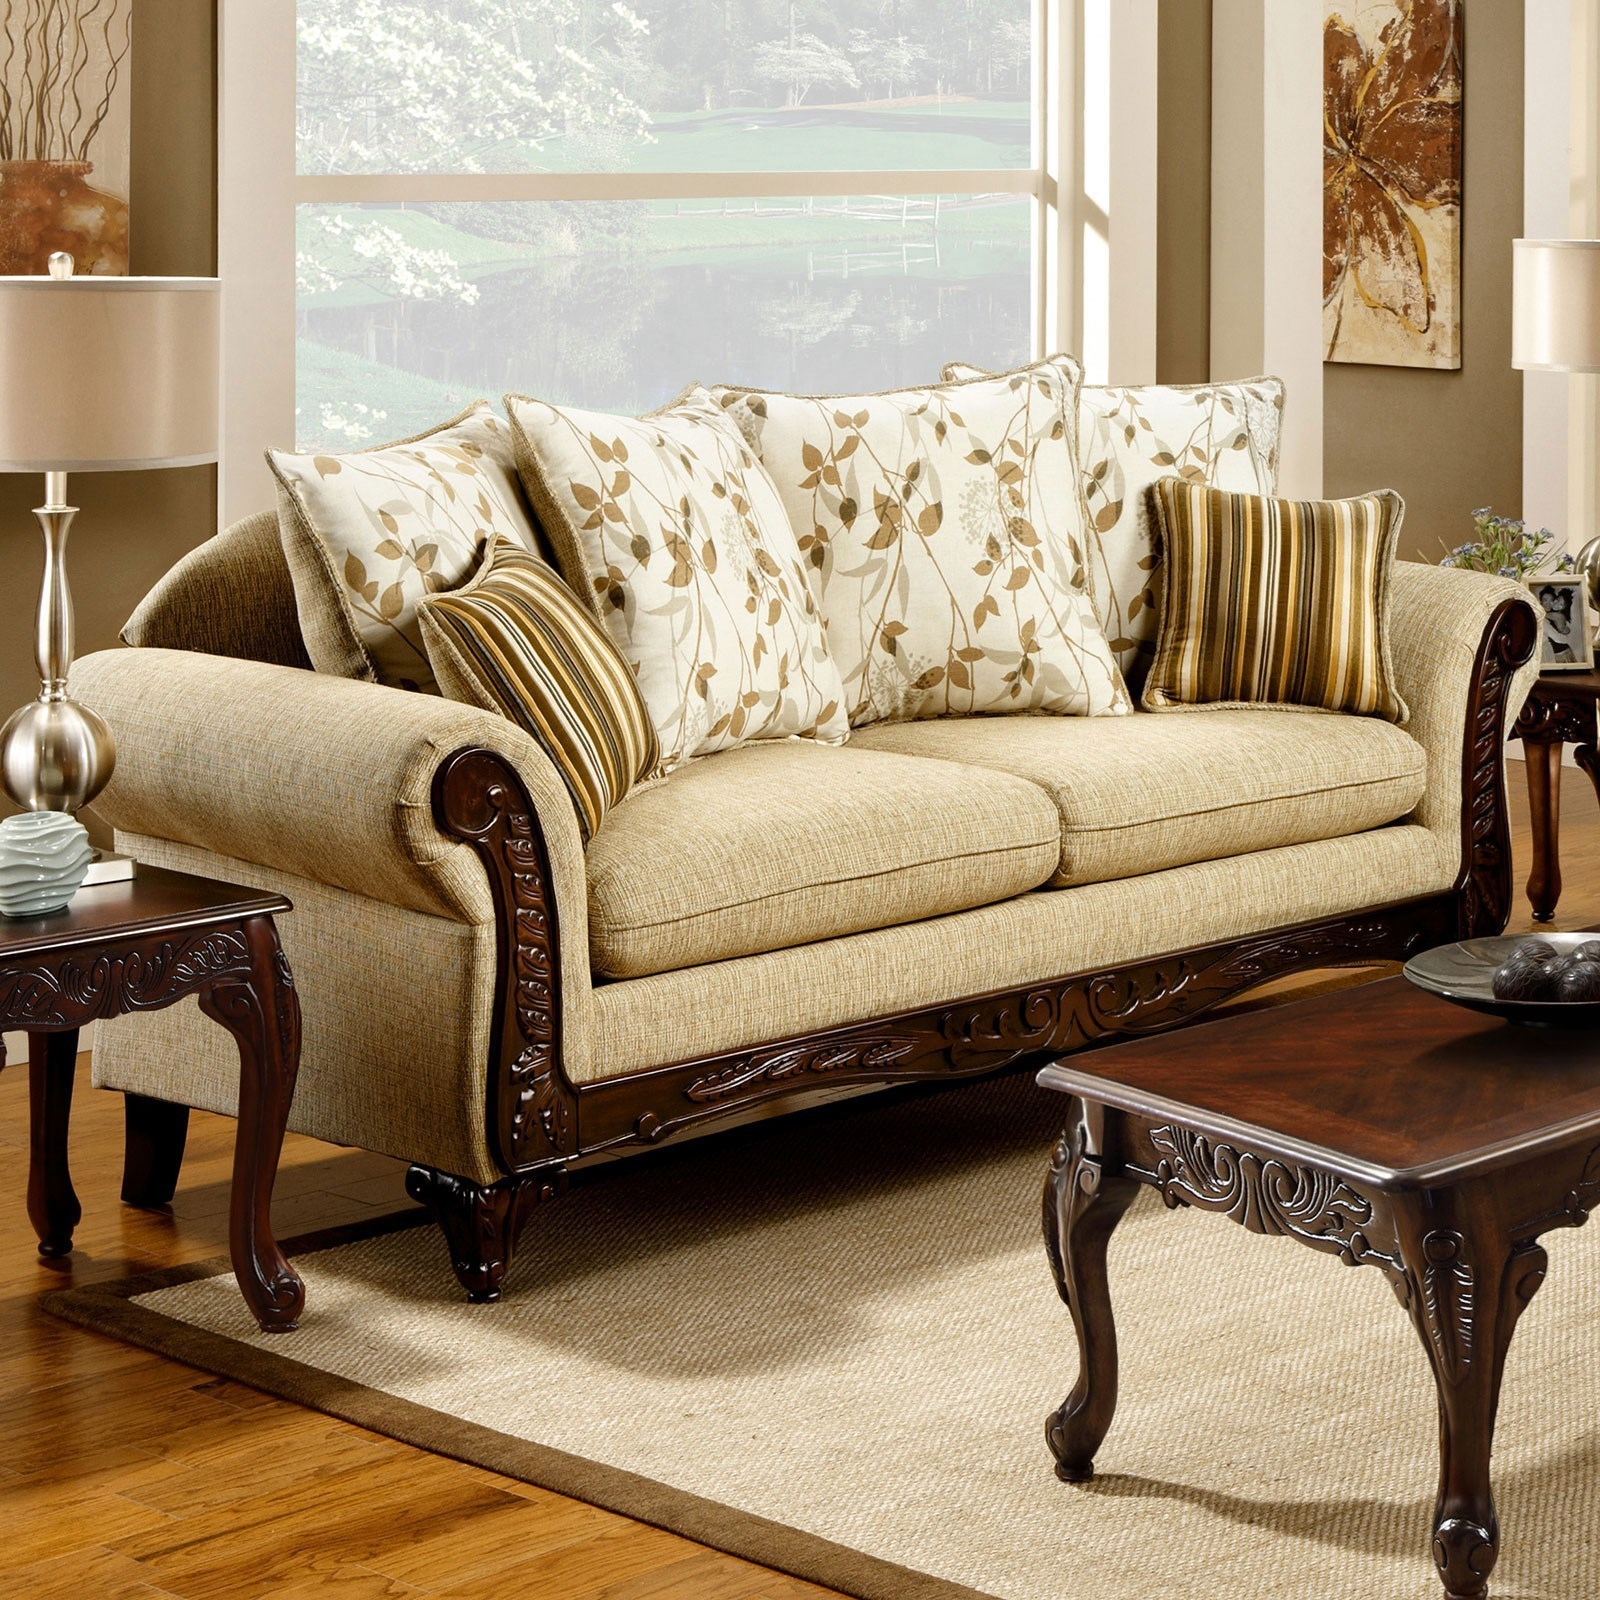 america doncaster sm7435 sf traditional sofa with decorative wood rh delsolfurniture com antique sofa with wood trim ashley sofa with wood trim